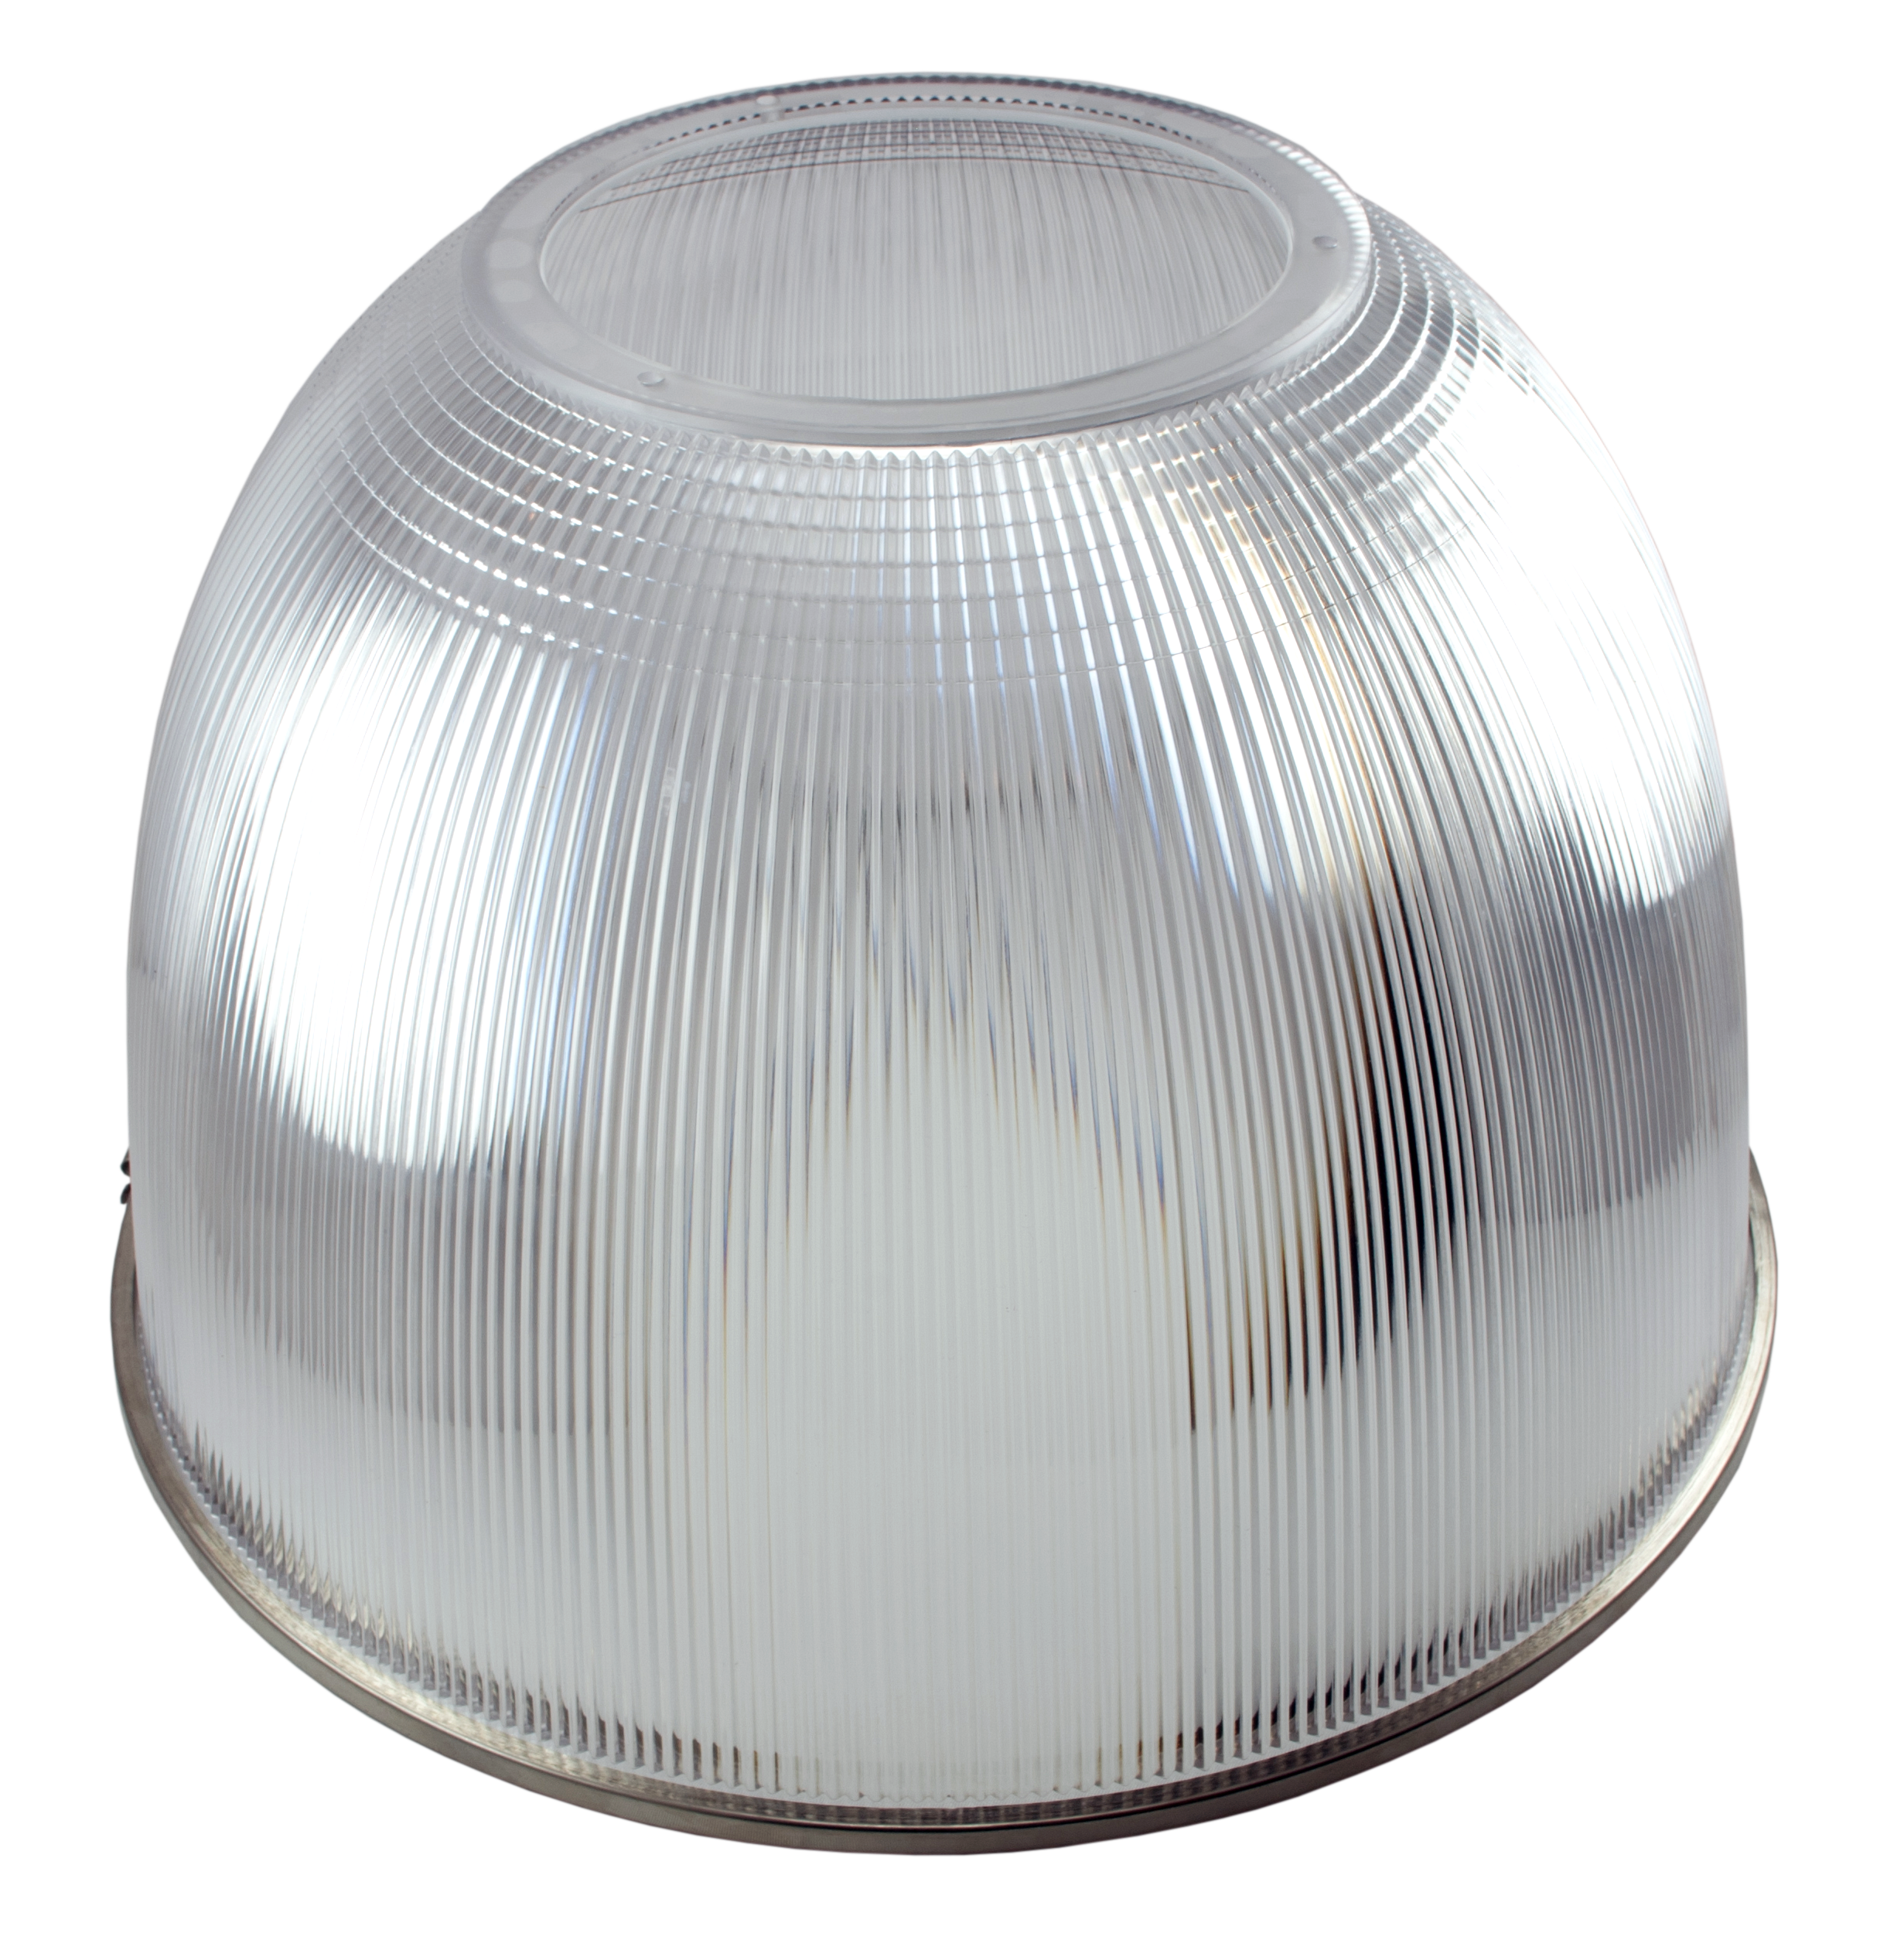 RHB/AY70D 10124 Round LED High Bay 70 Degree Polycarbonate Reflector